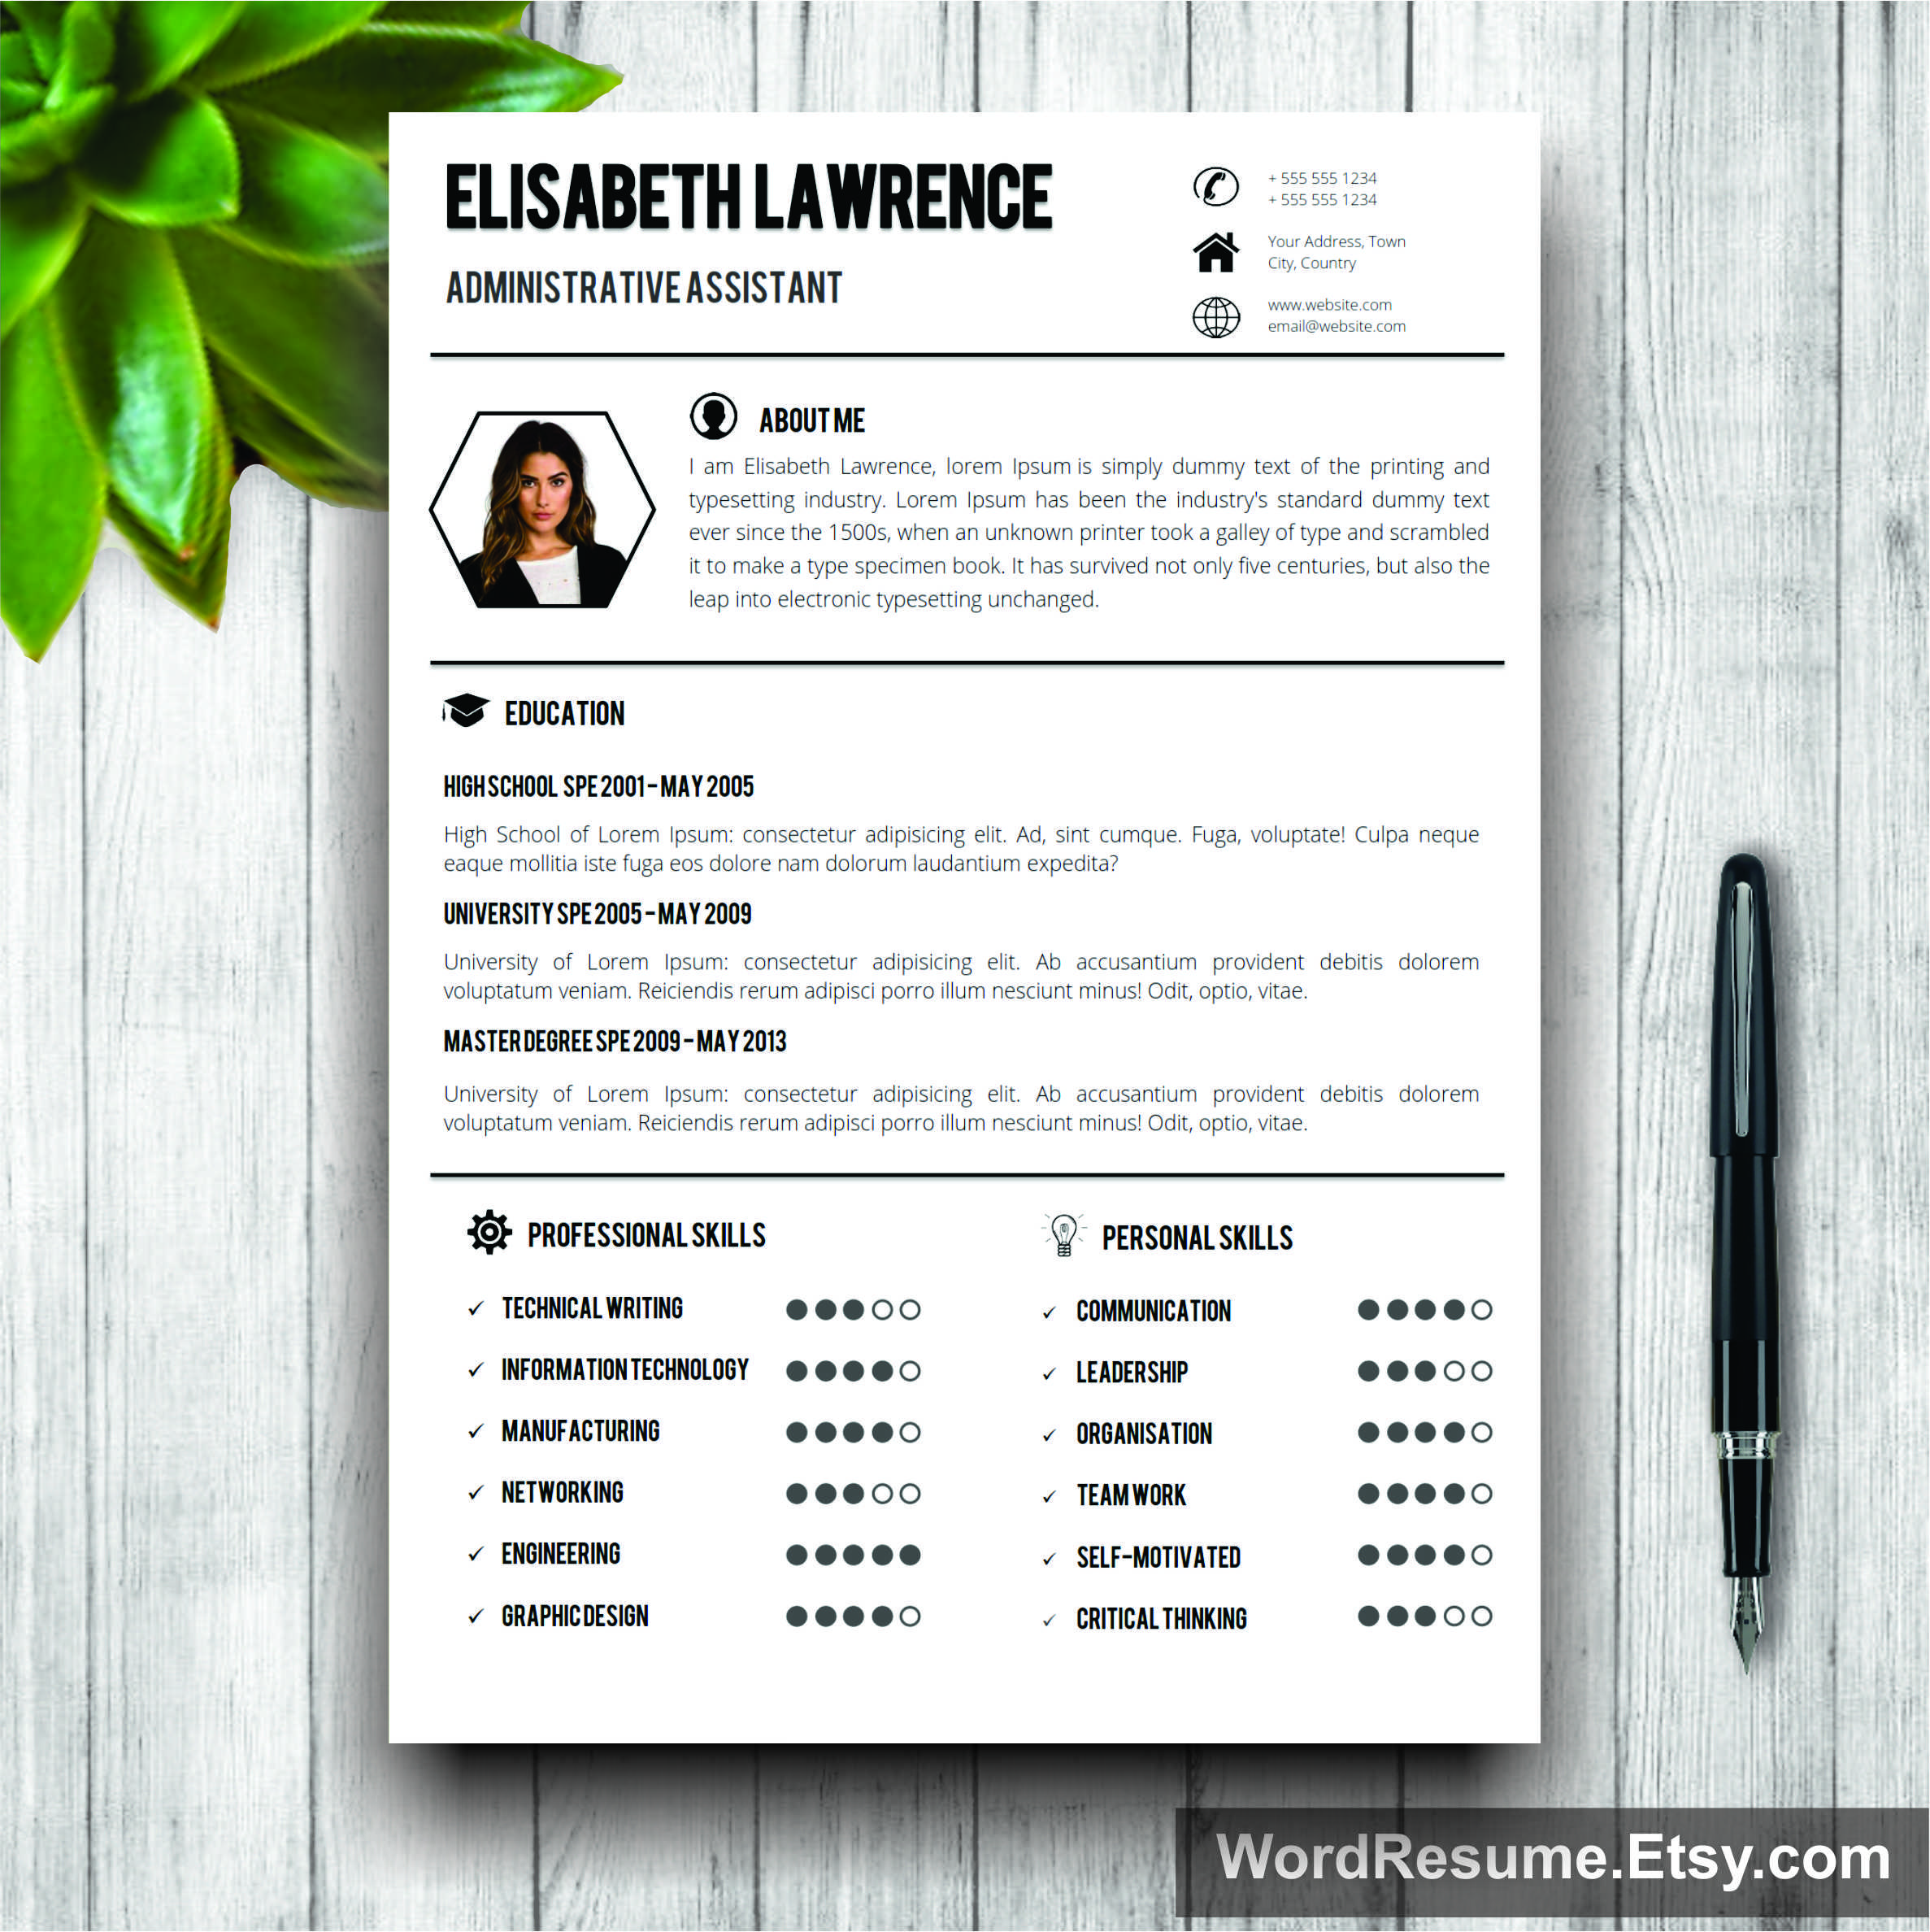 Word Resume Template With Photo + Cover Letter U2013 U201cElisabeth Lawrenceu201d